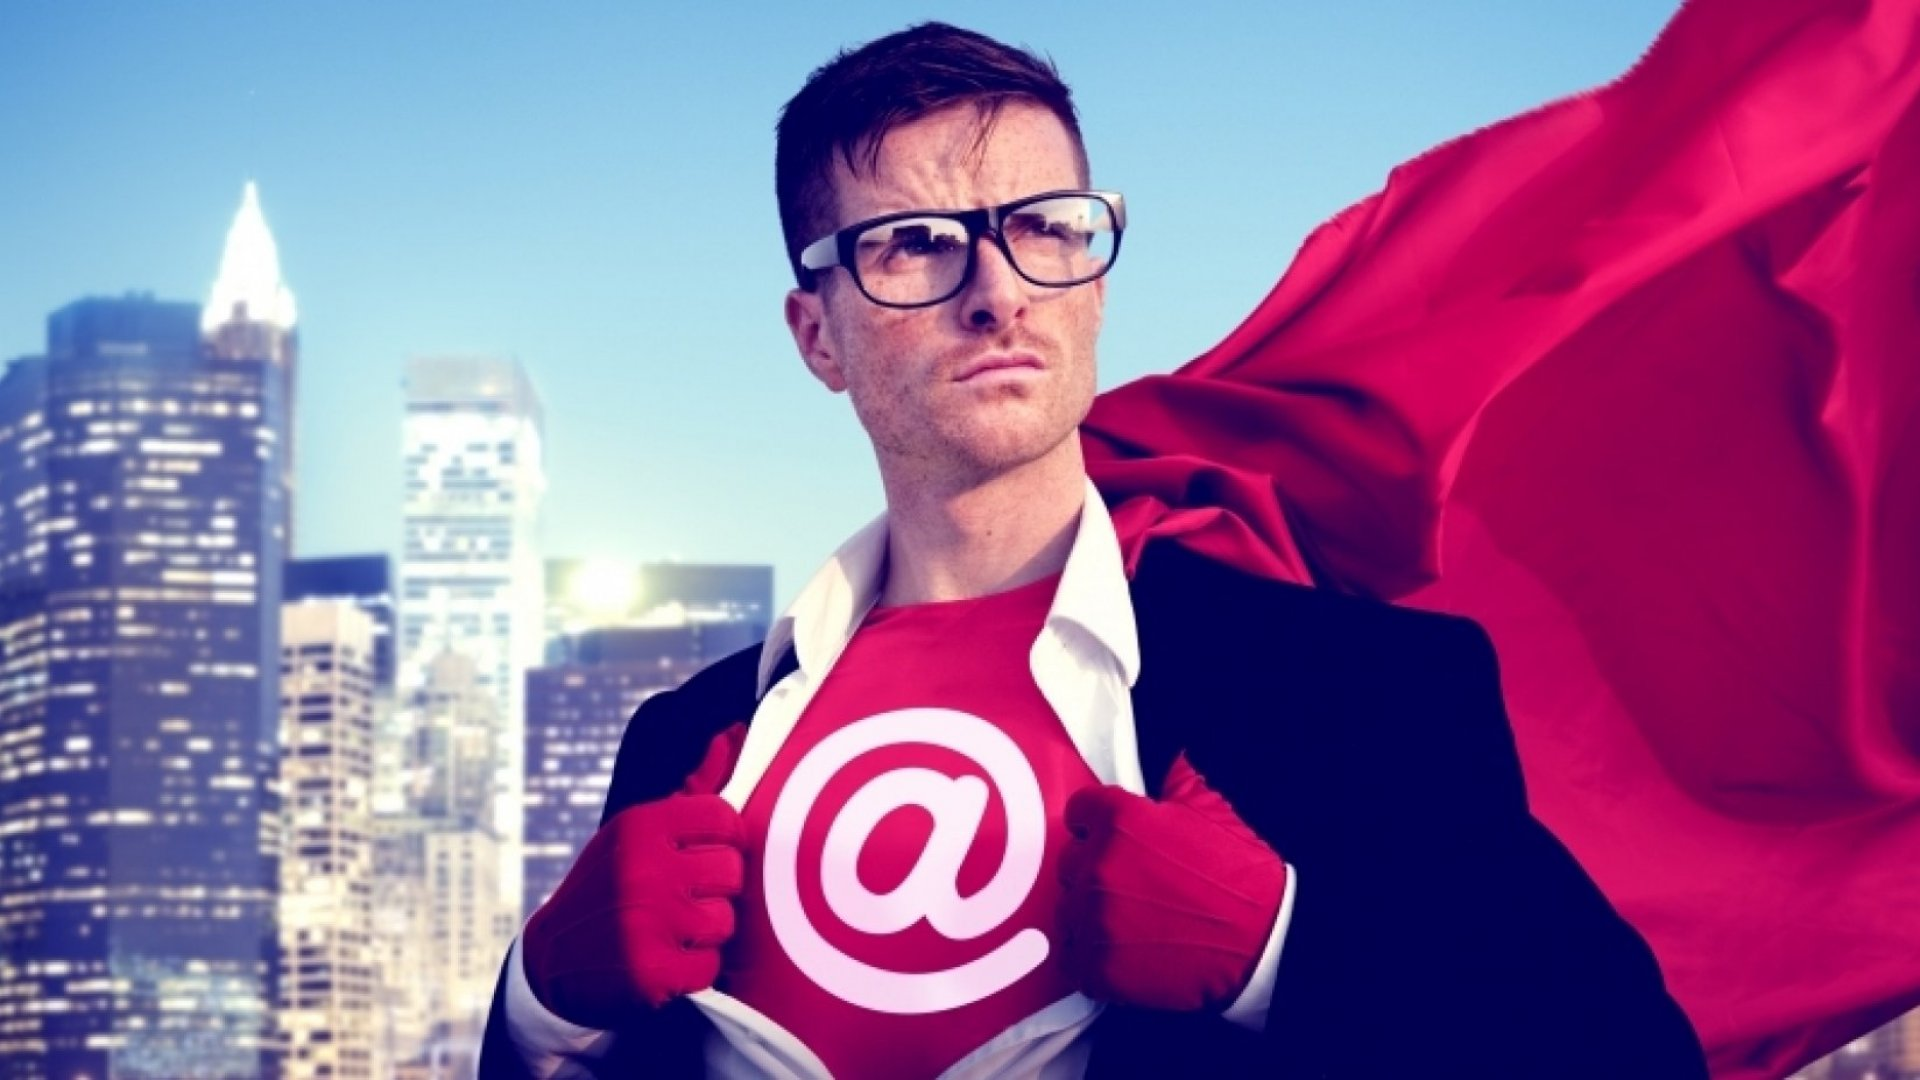 13 Quick and Dirty Secrets for Writing Killer Emails